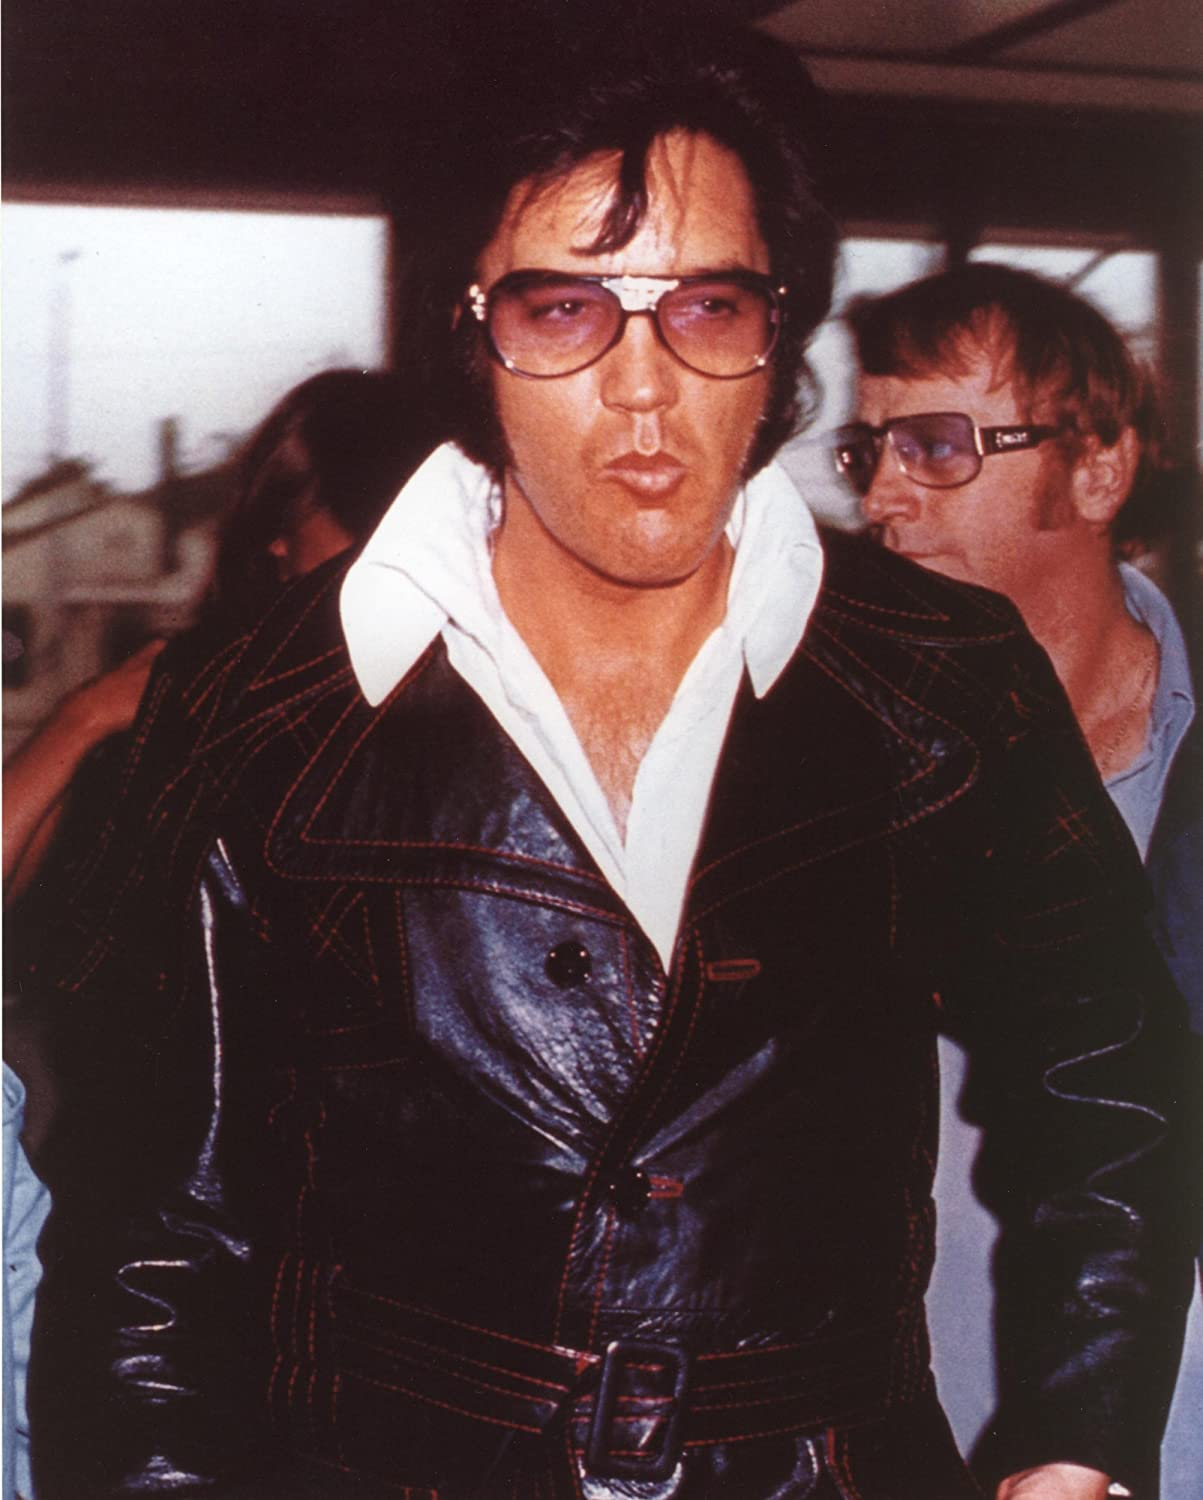 Elvis Presley Photo Looking Choice Cool The At the price of surprise Music Photos Rock Star King